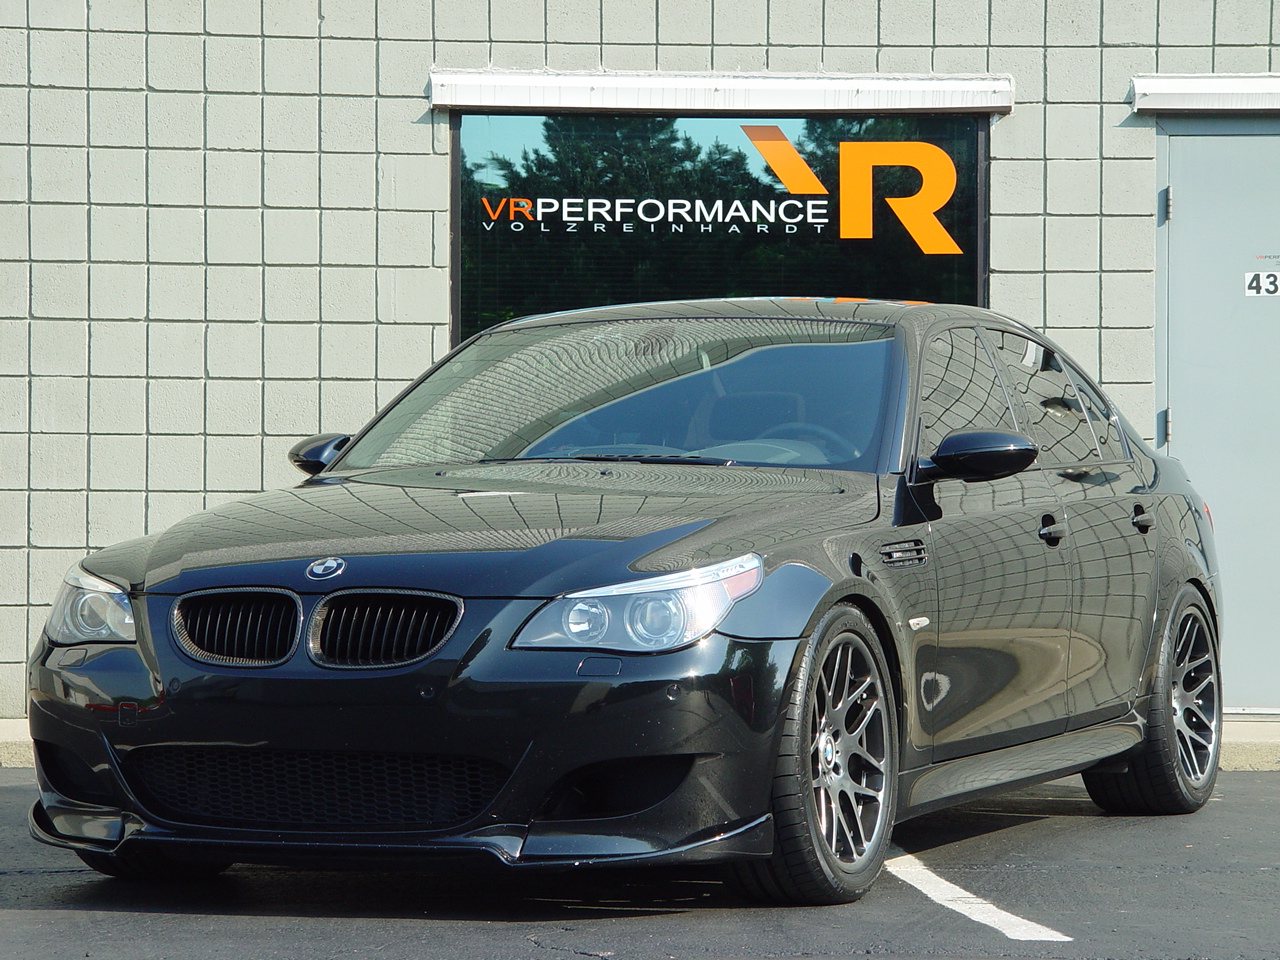 2006 BMW M5 Dinan Supersprint